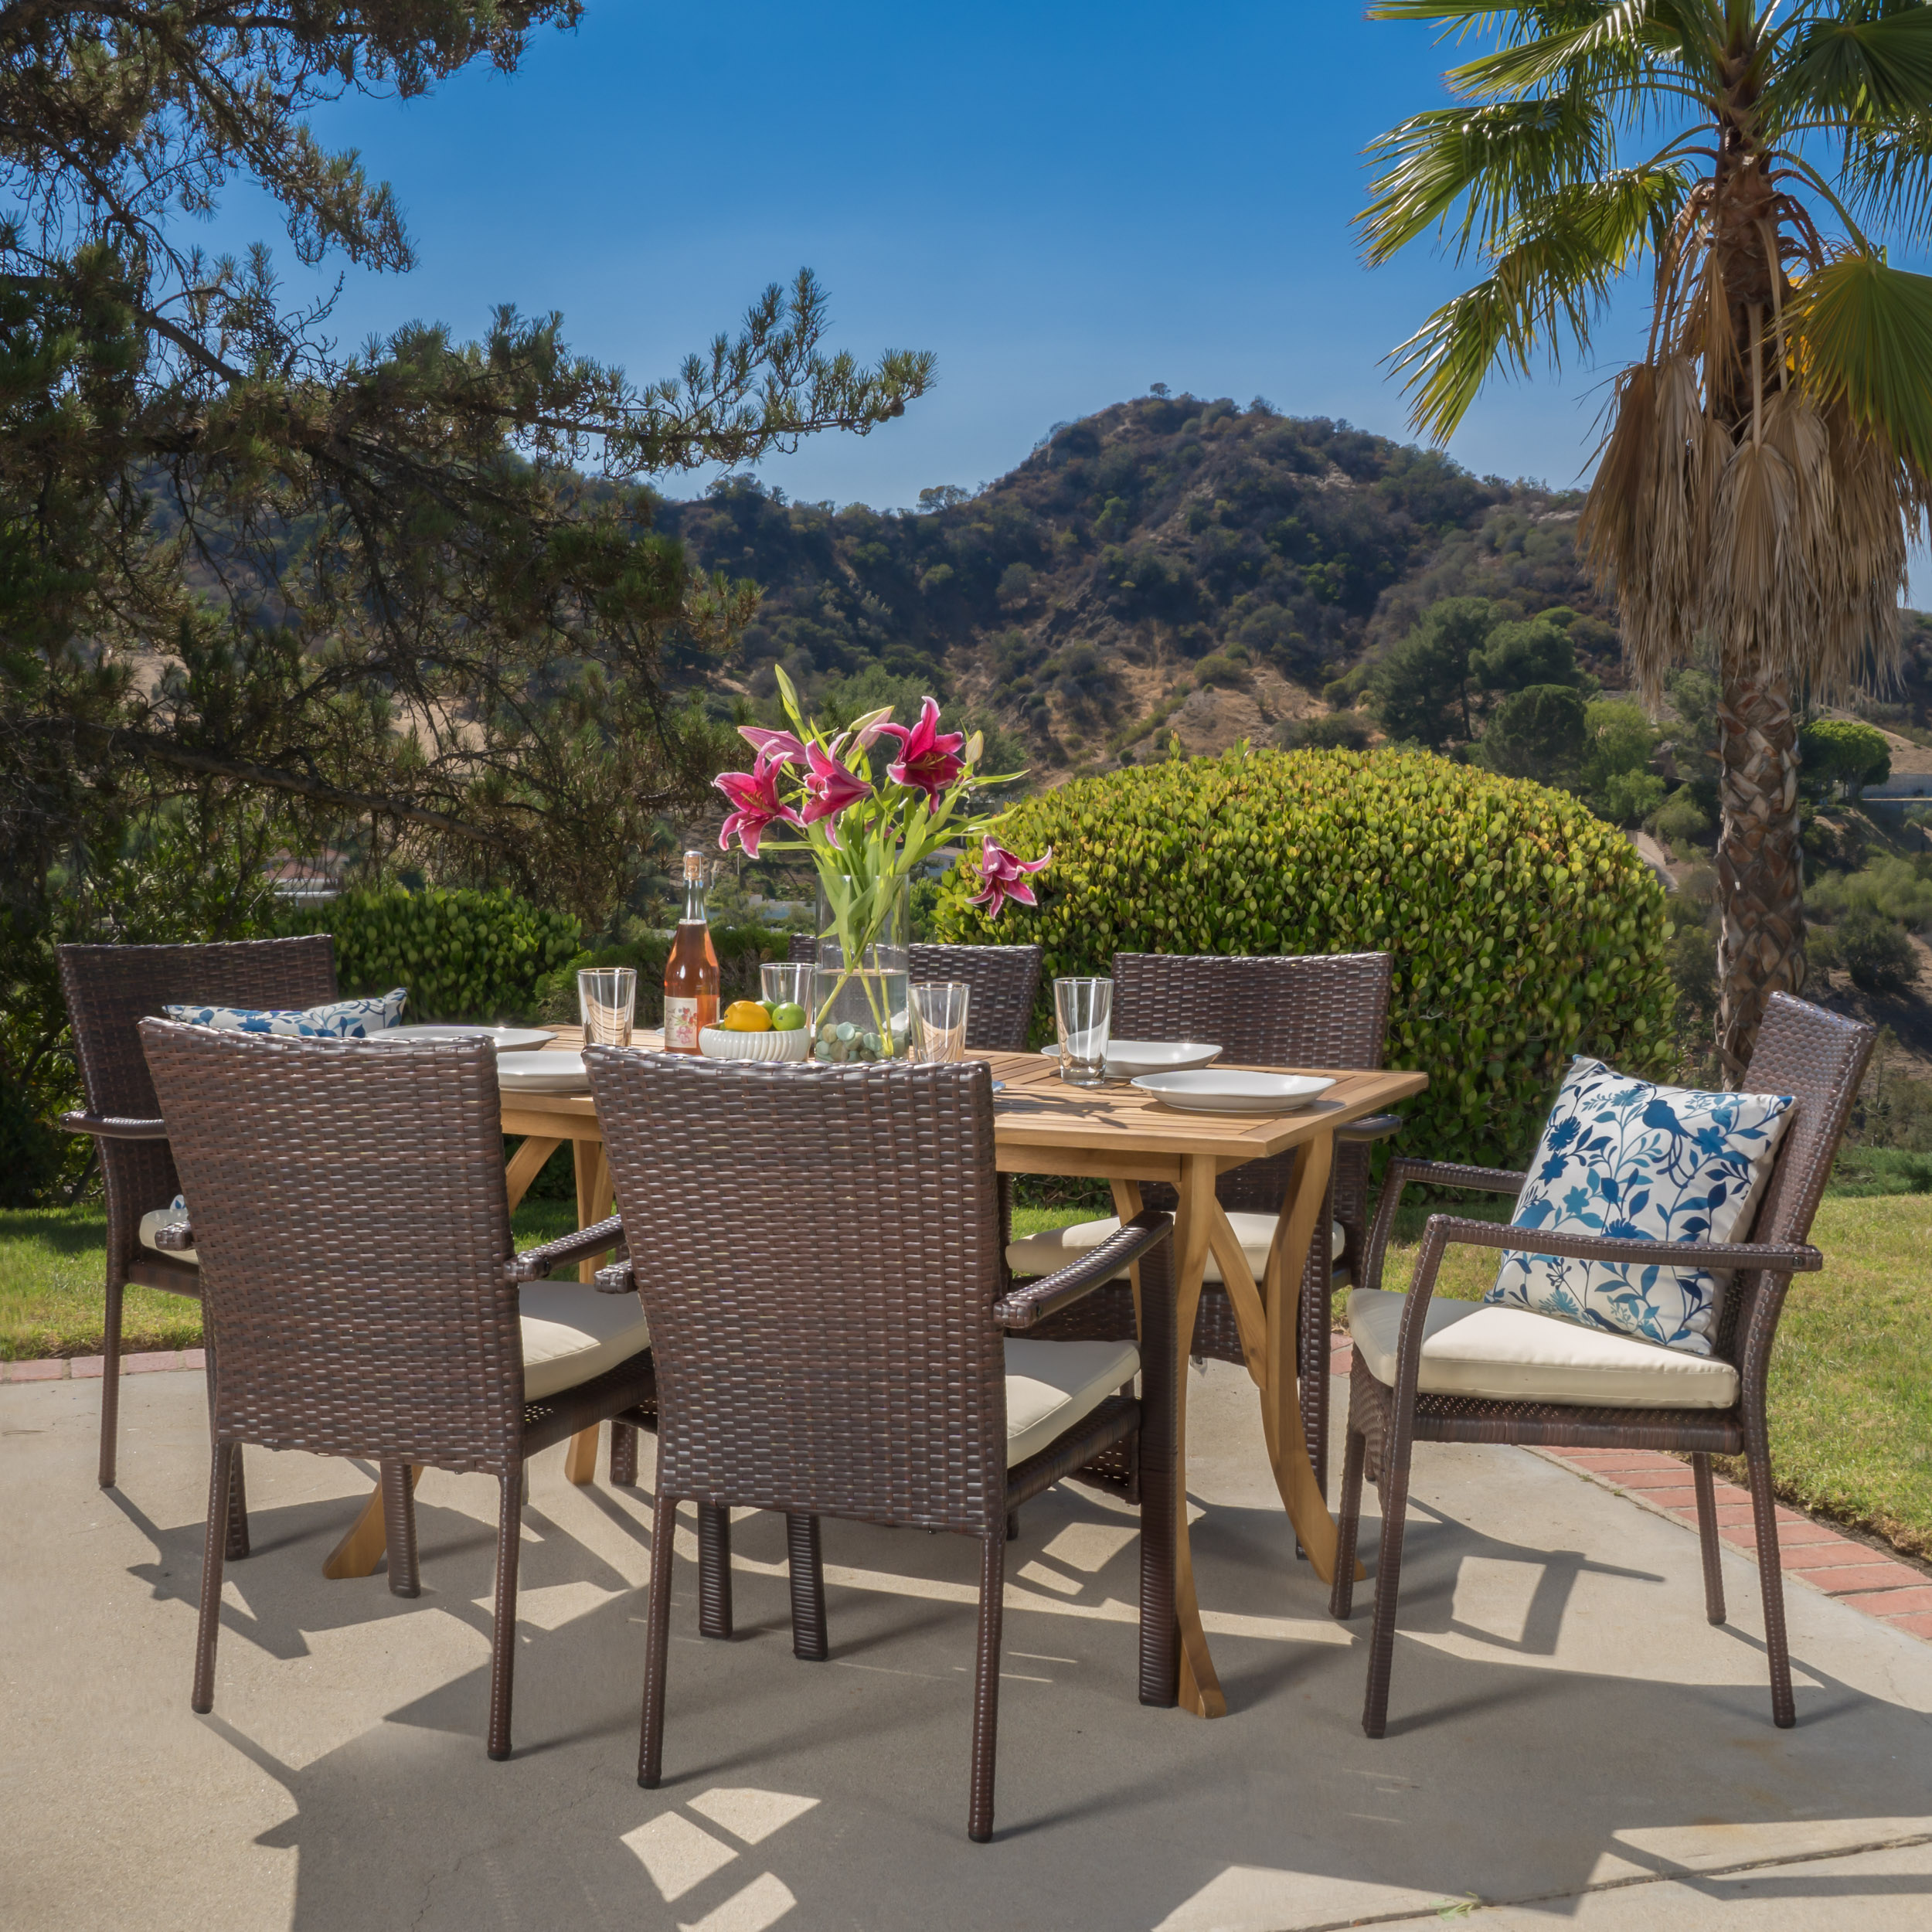 Ruiz 7 Piece Outdoor Wicker and Acacia Wood Dining Set with Cushions, Teak Finish, Creme